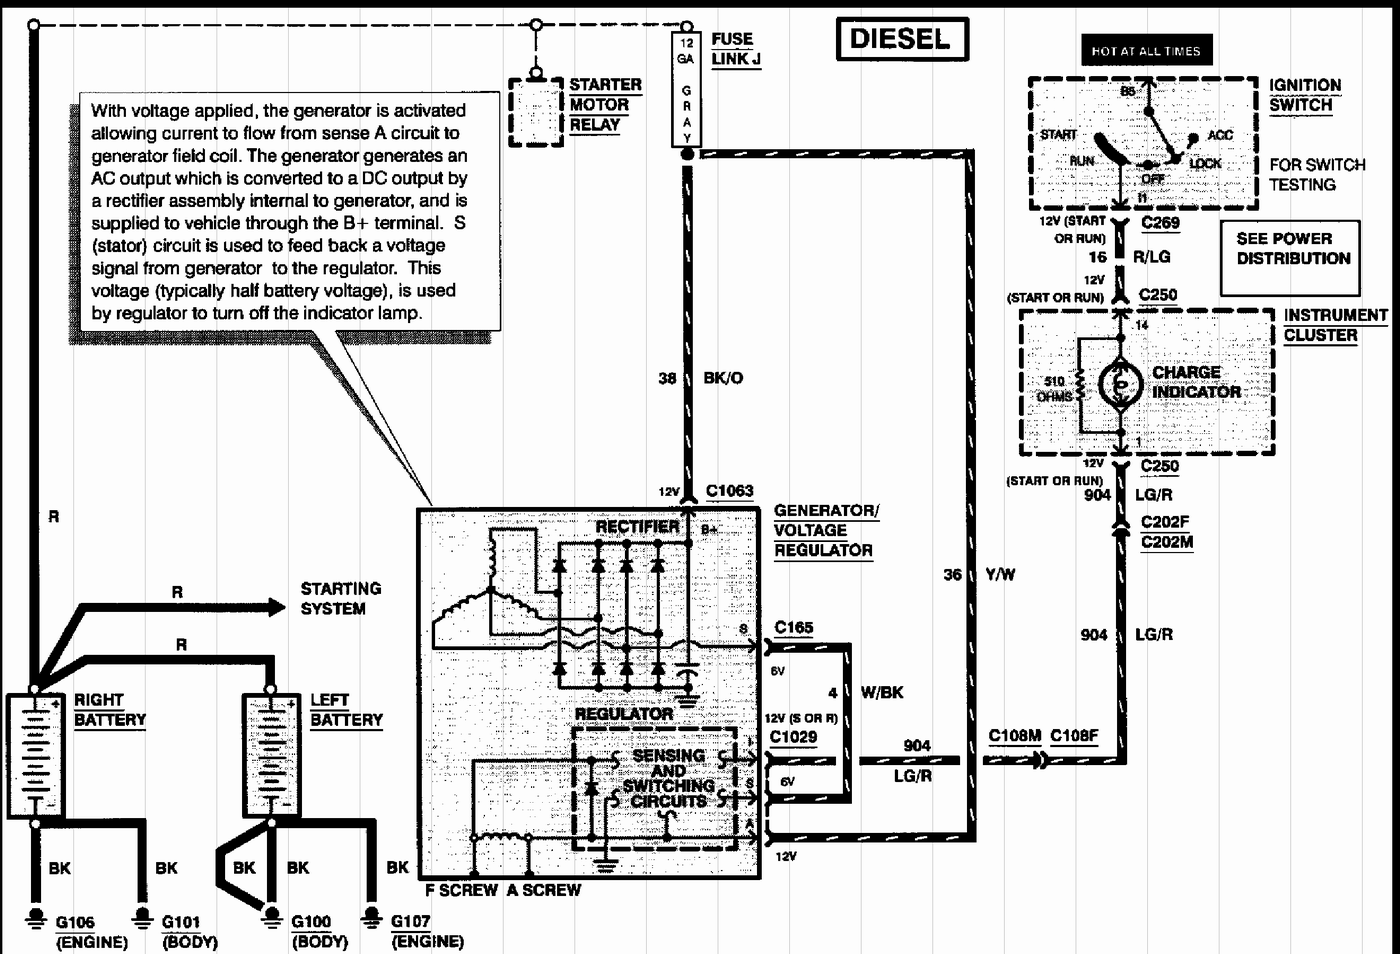 medium resolution of i need a wiring diagram for a 97 f350 7 3 powerstroke with